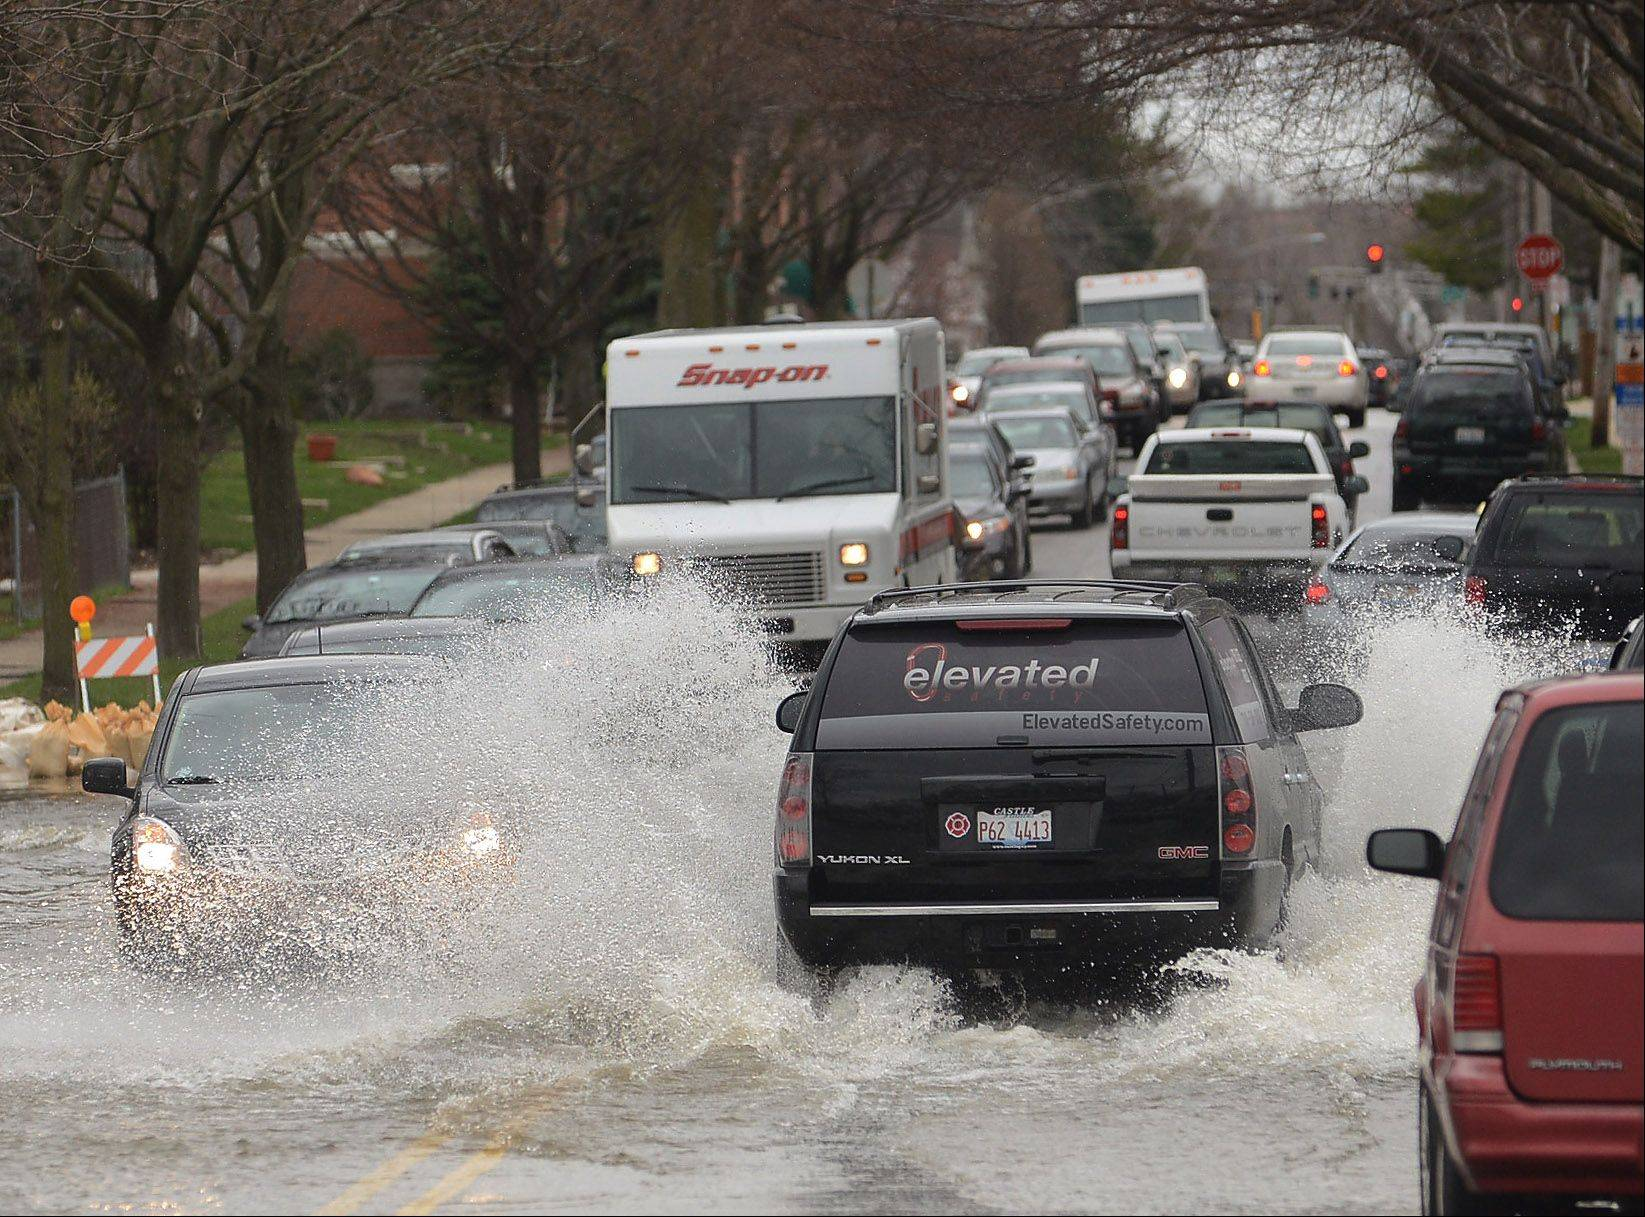 Cars try to plow through the water of a flooded Graceland Avenue in Des Plaines.